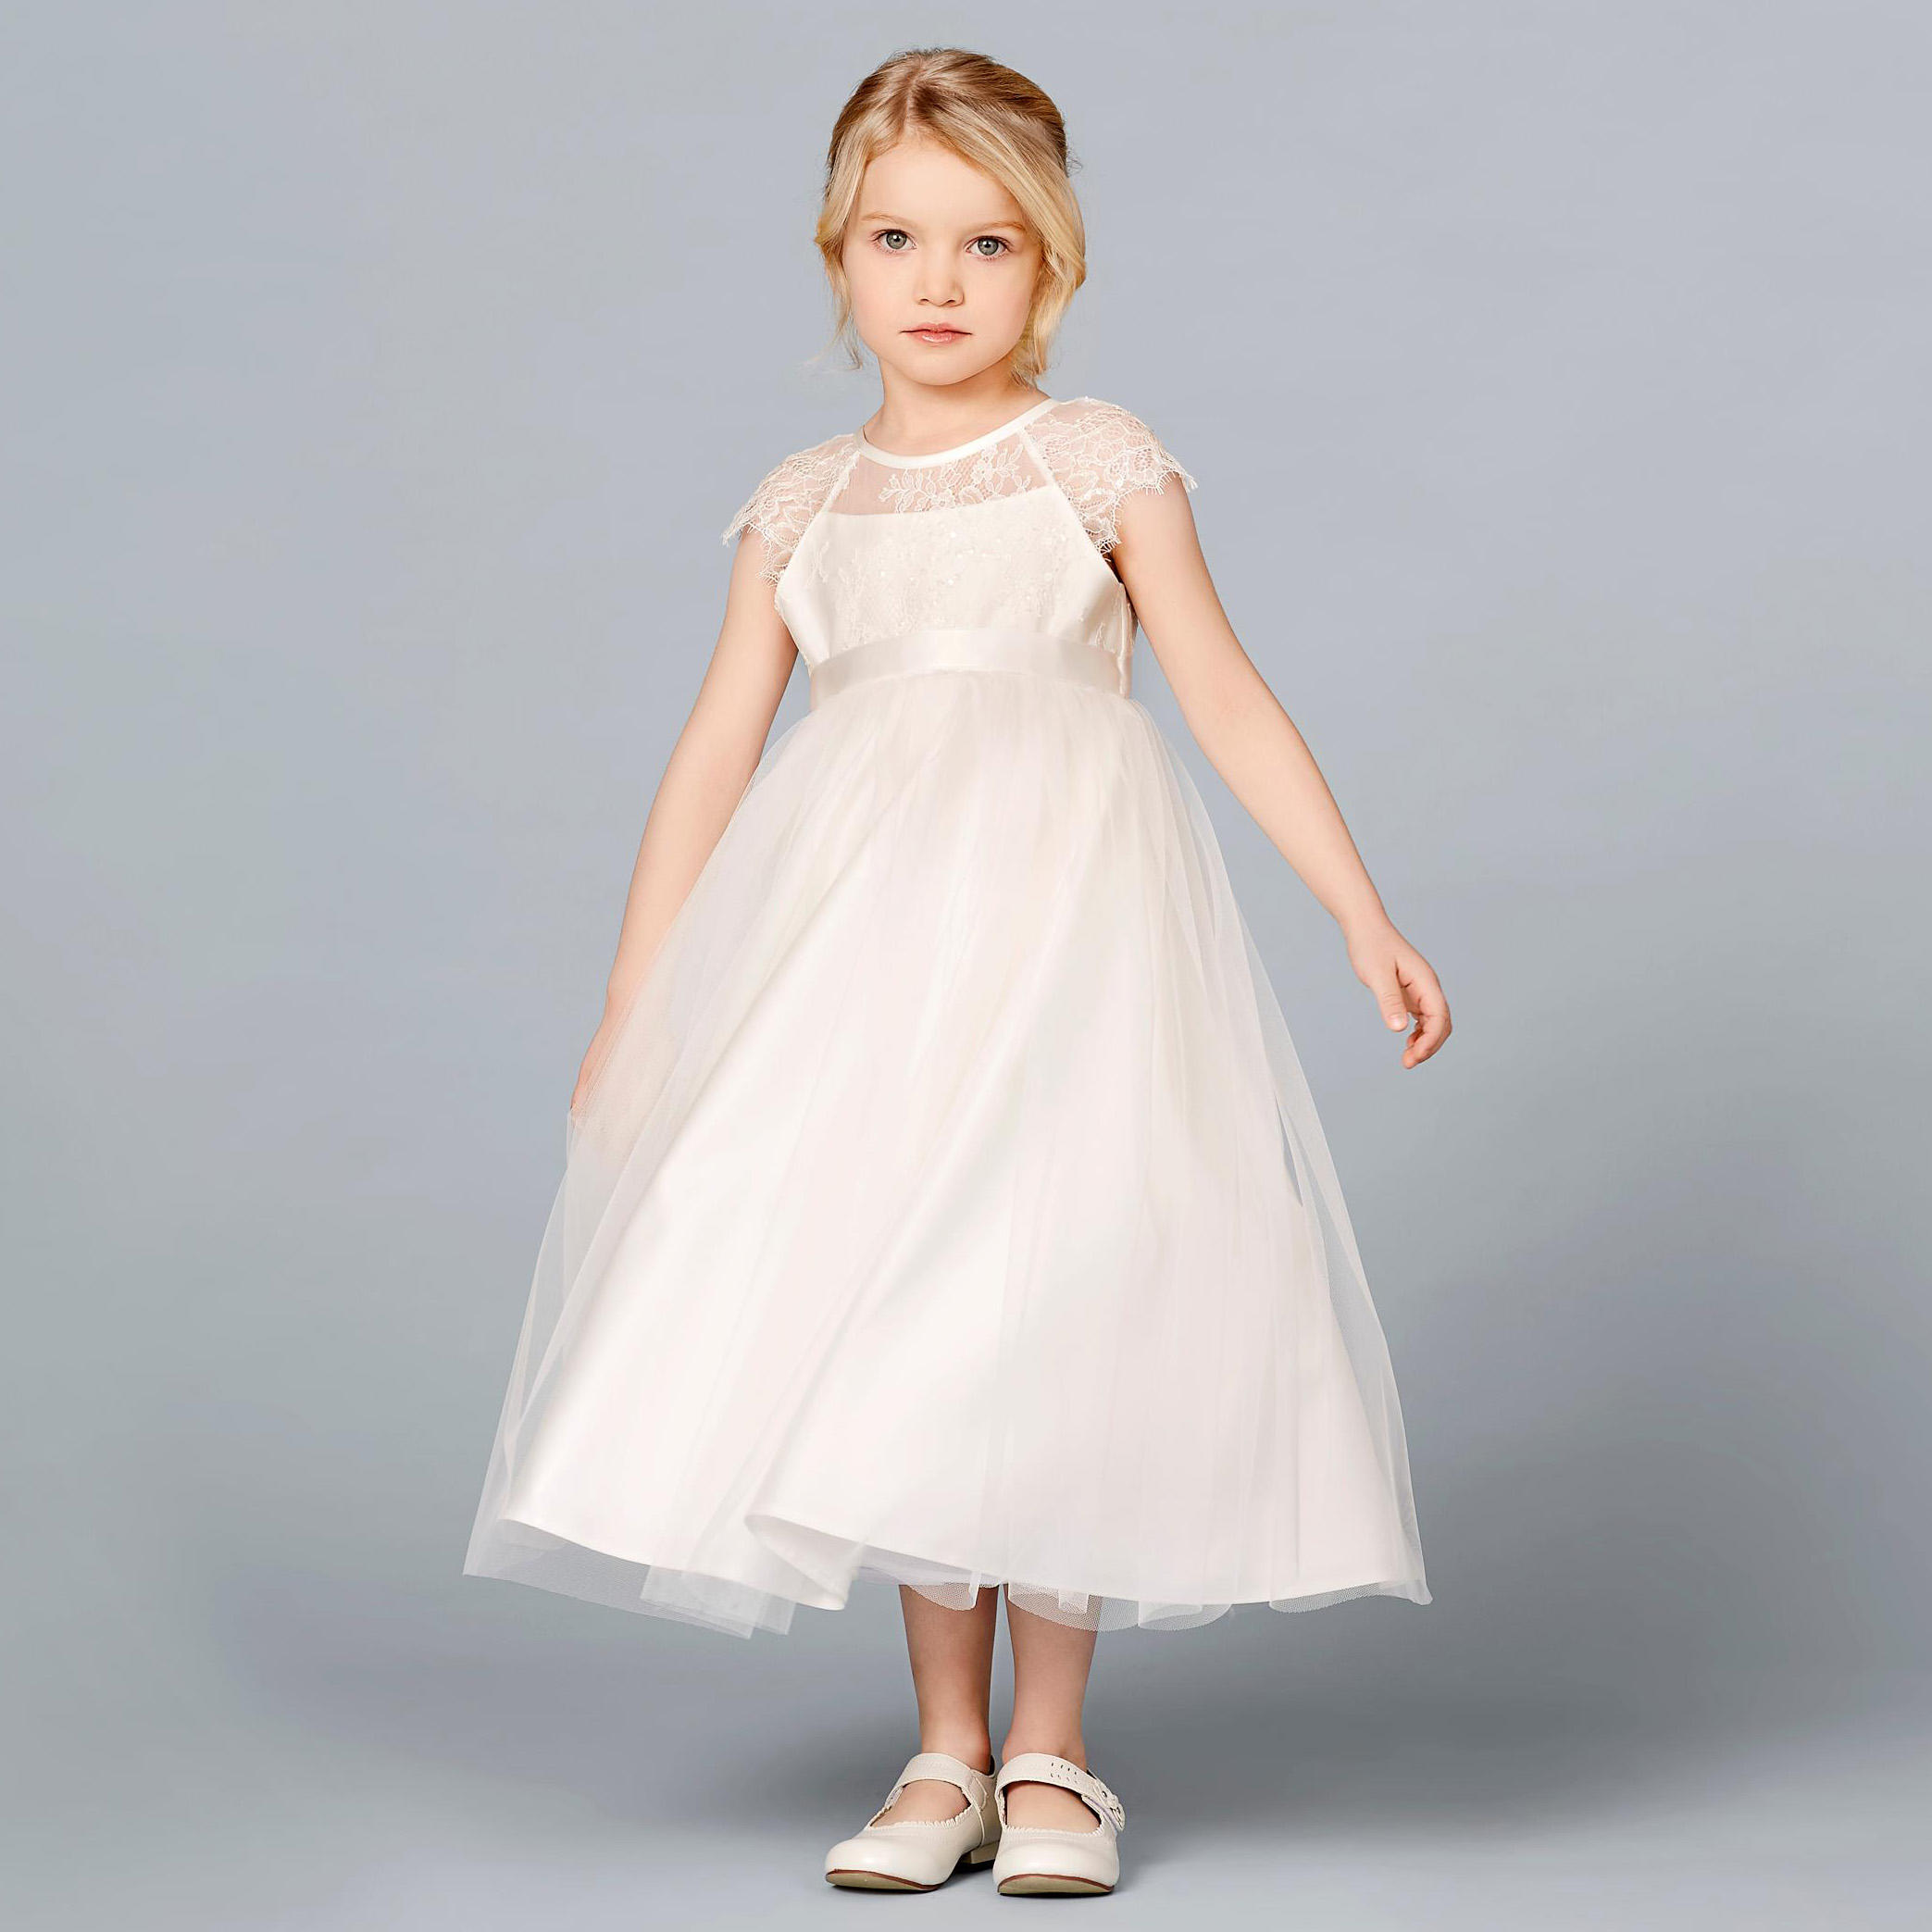 Flower Girl Gowns: Chantilly Lace & Tulle Flower Girl Dress